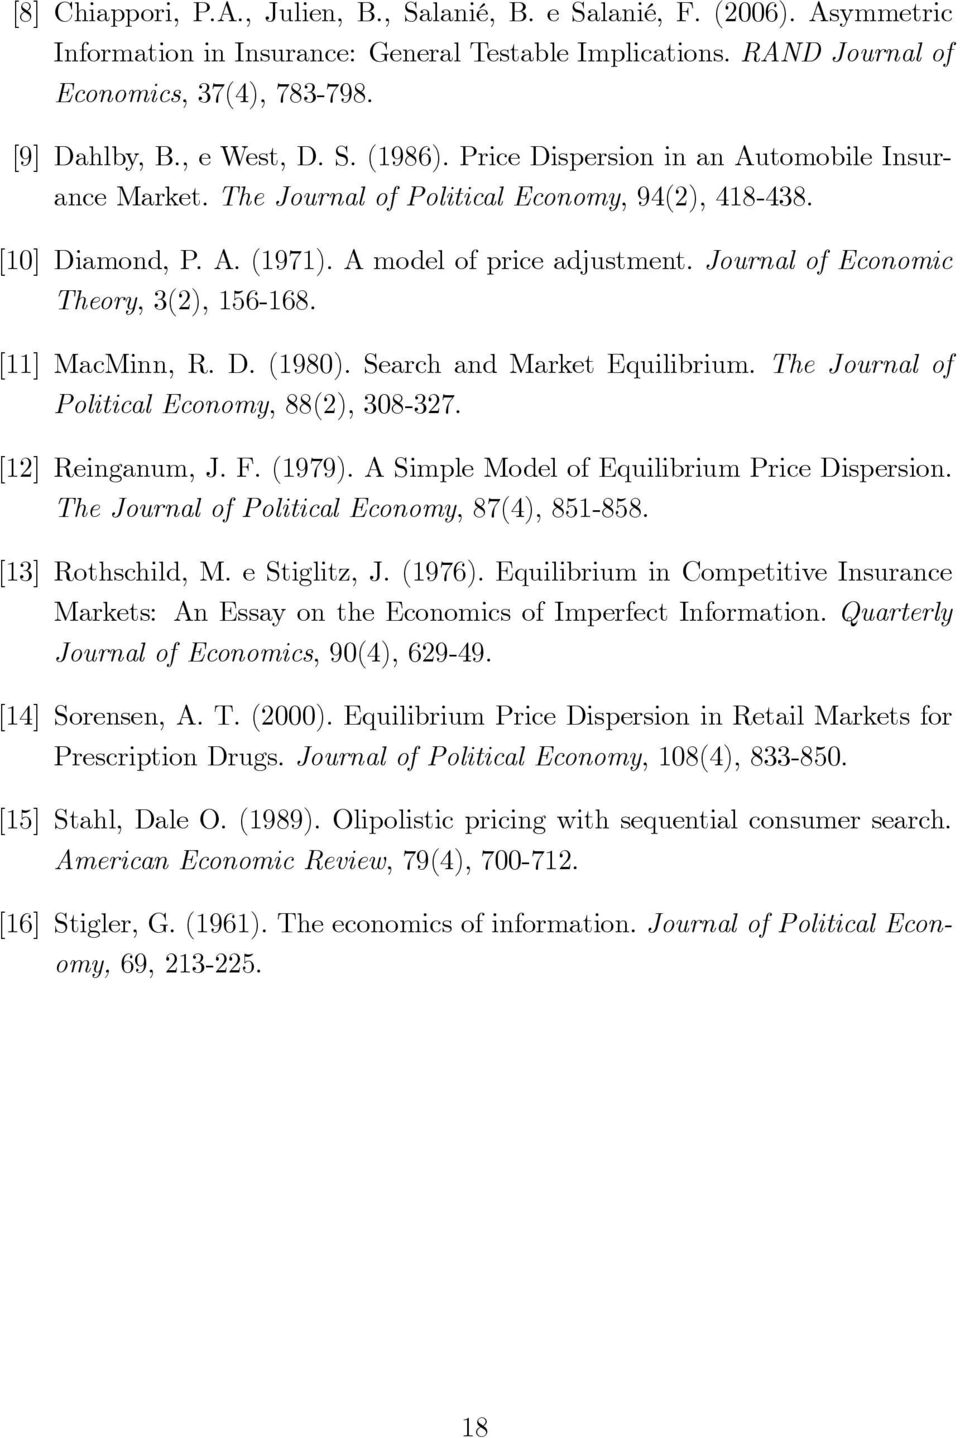 Journal of Economic Theory, 3(2), 156-168. [11] MacMinn, R. D. (1980). Search and Market Equilibrium. The Journal of Political Economy, 88(2), 308-327. [12] Reinganum, J. F.(1979).